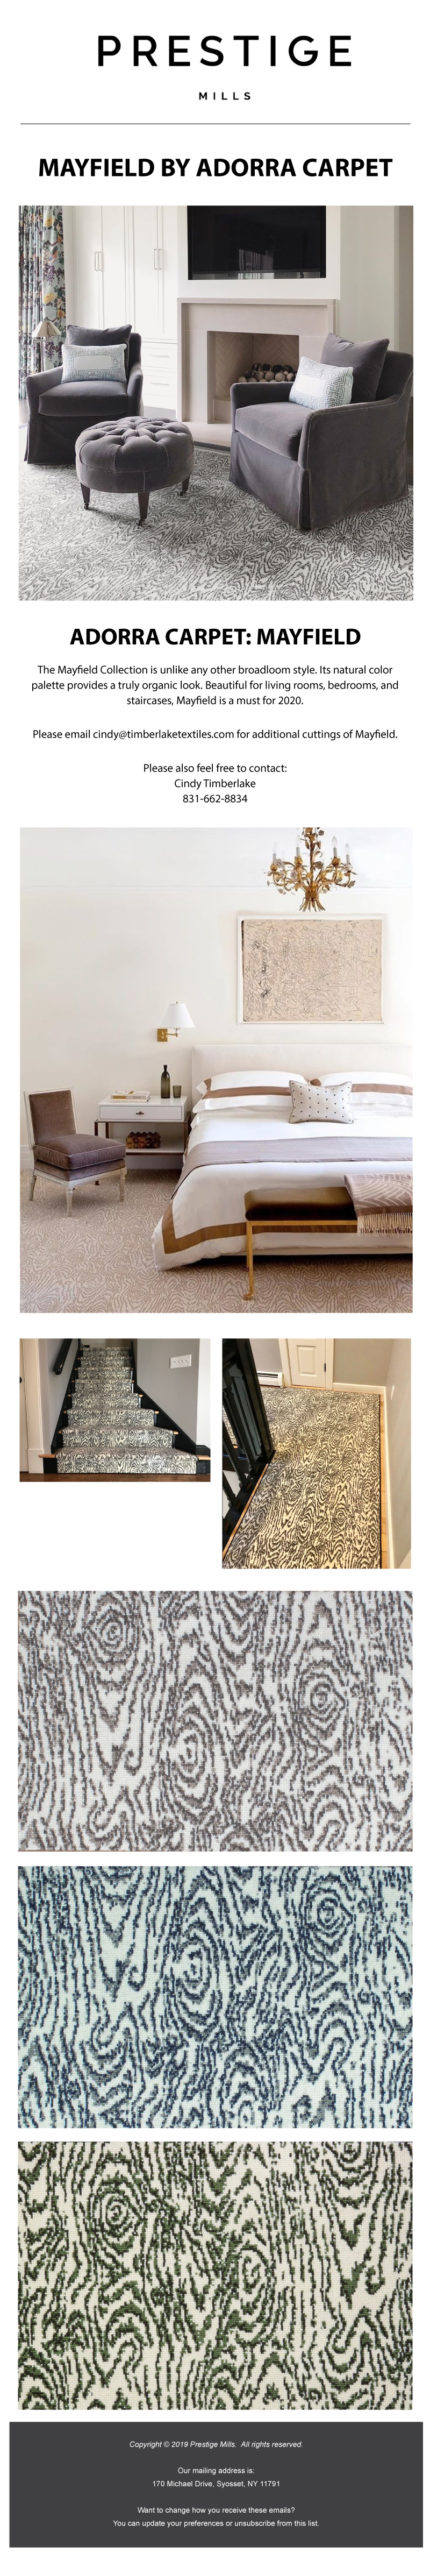 Prestige Mills | Mayfield by Adorra Carpet